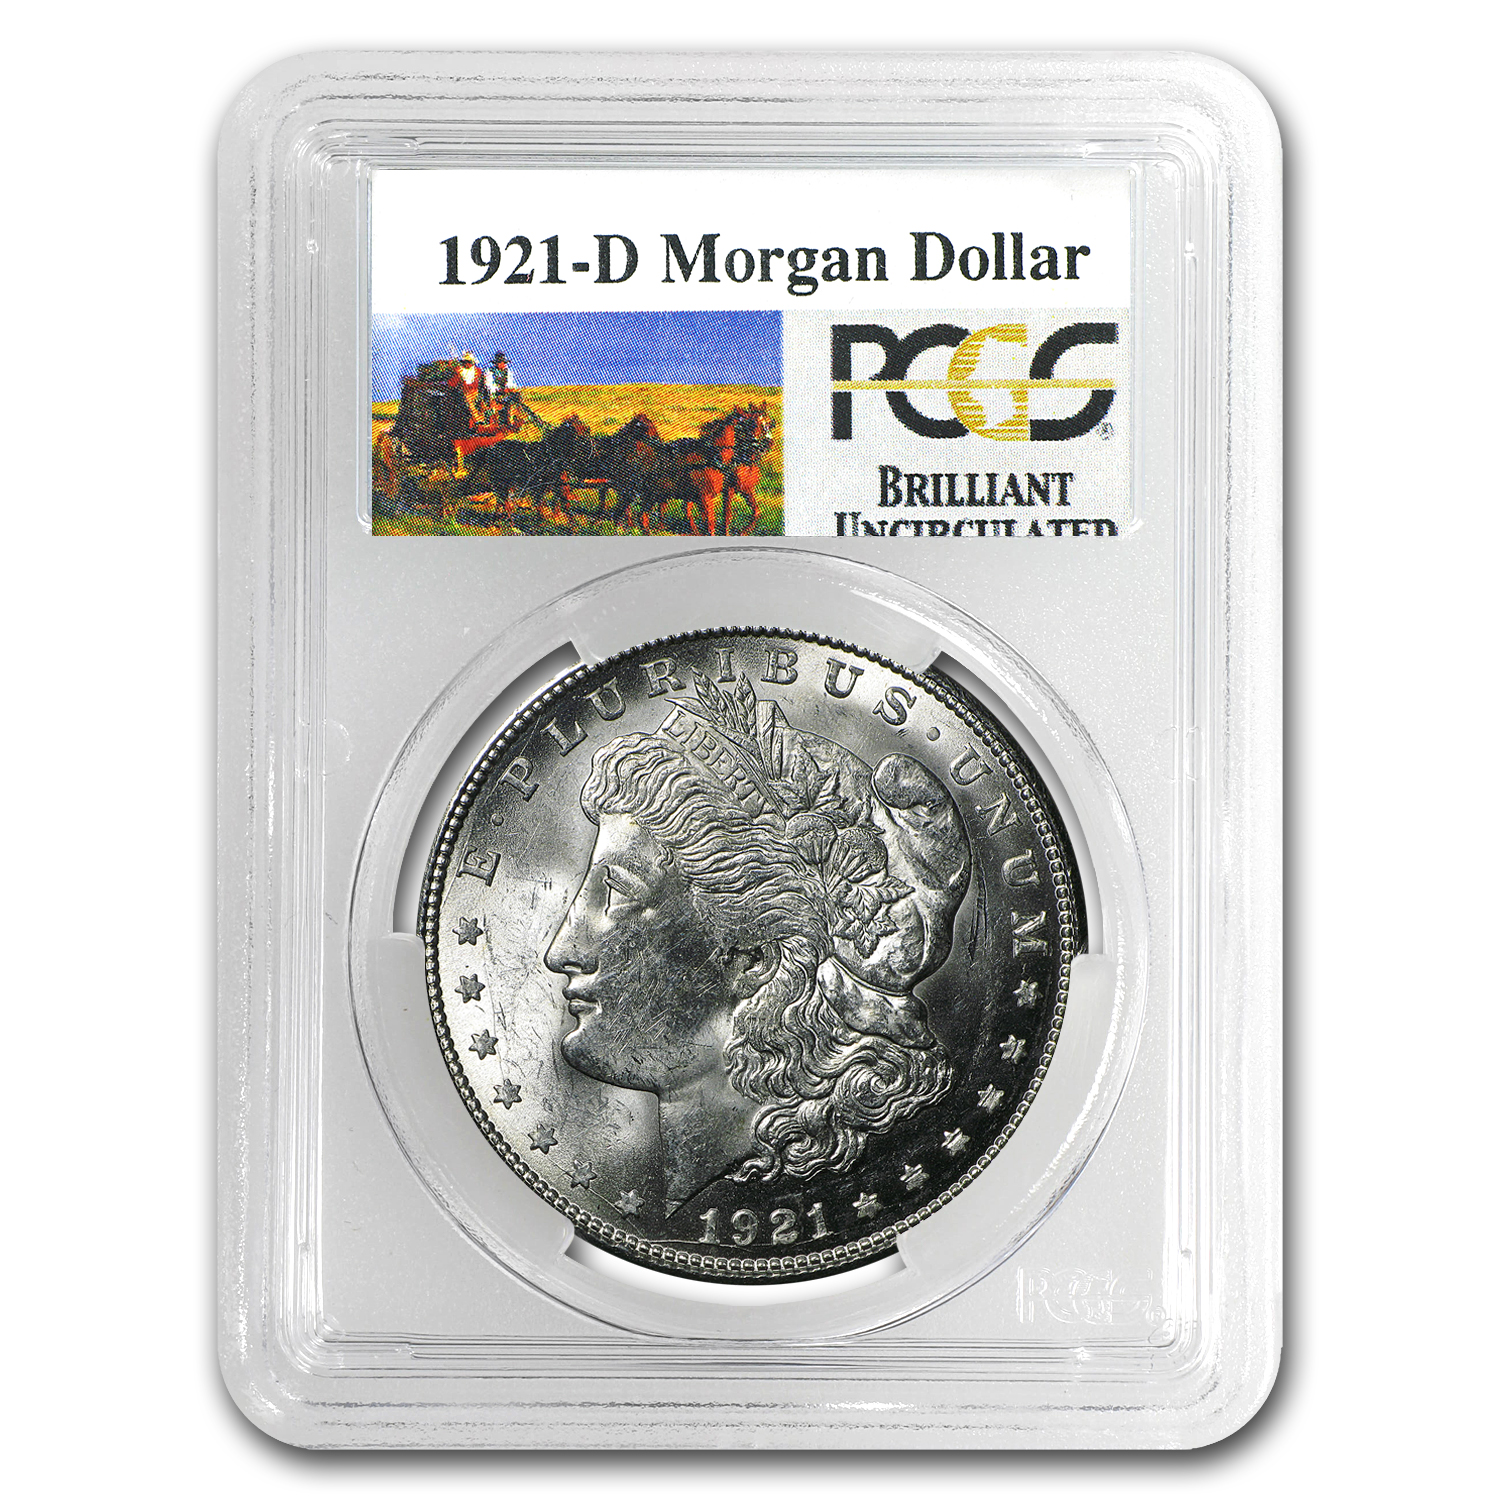 1921-D Stage Coach Morgan Dollar BU PCGS